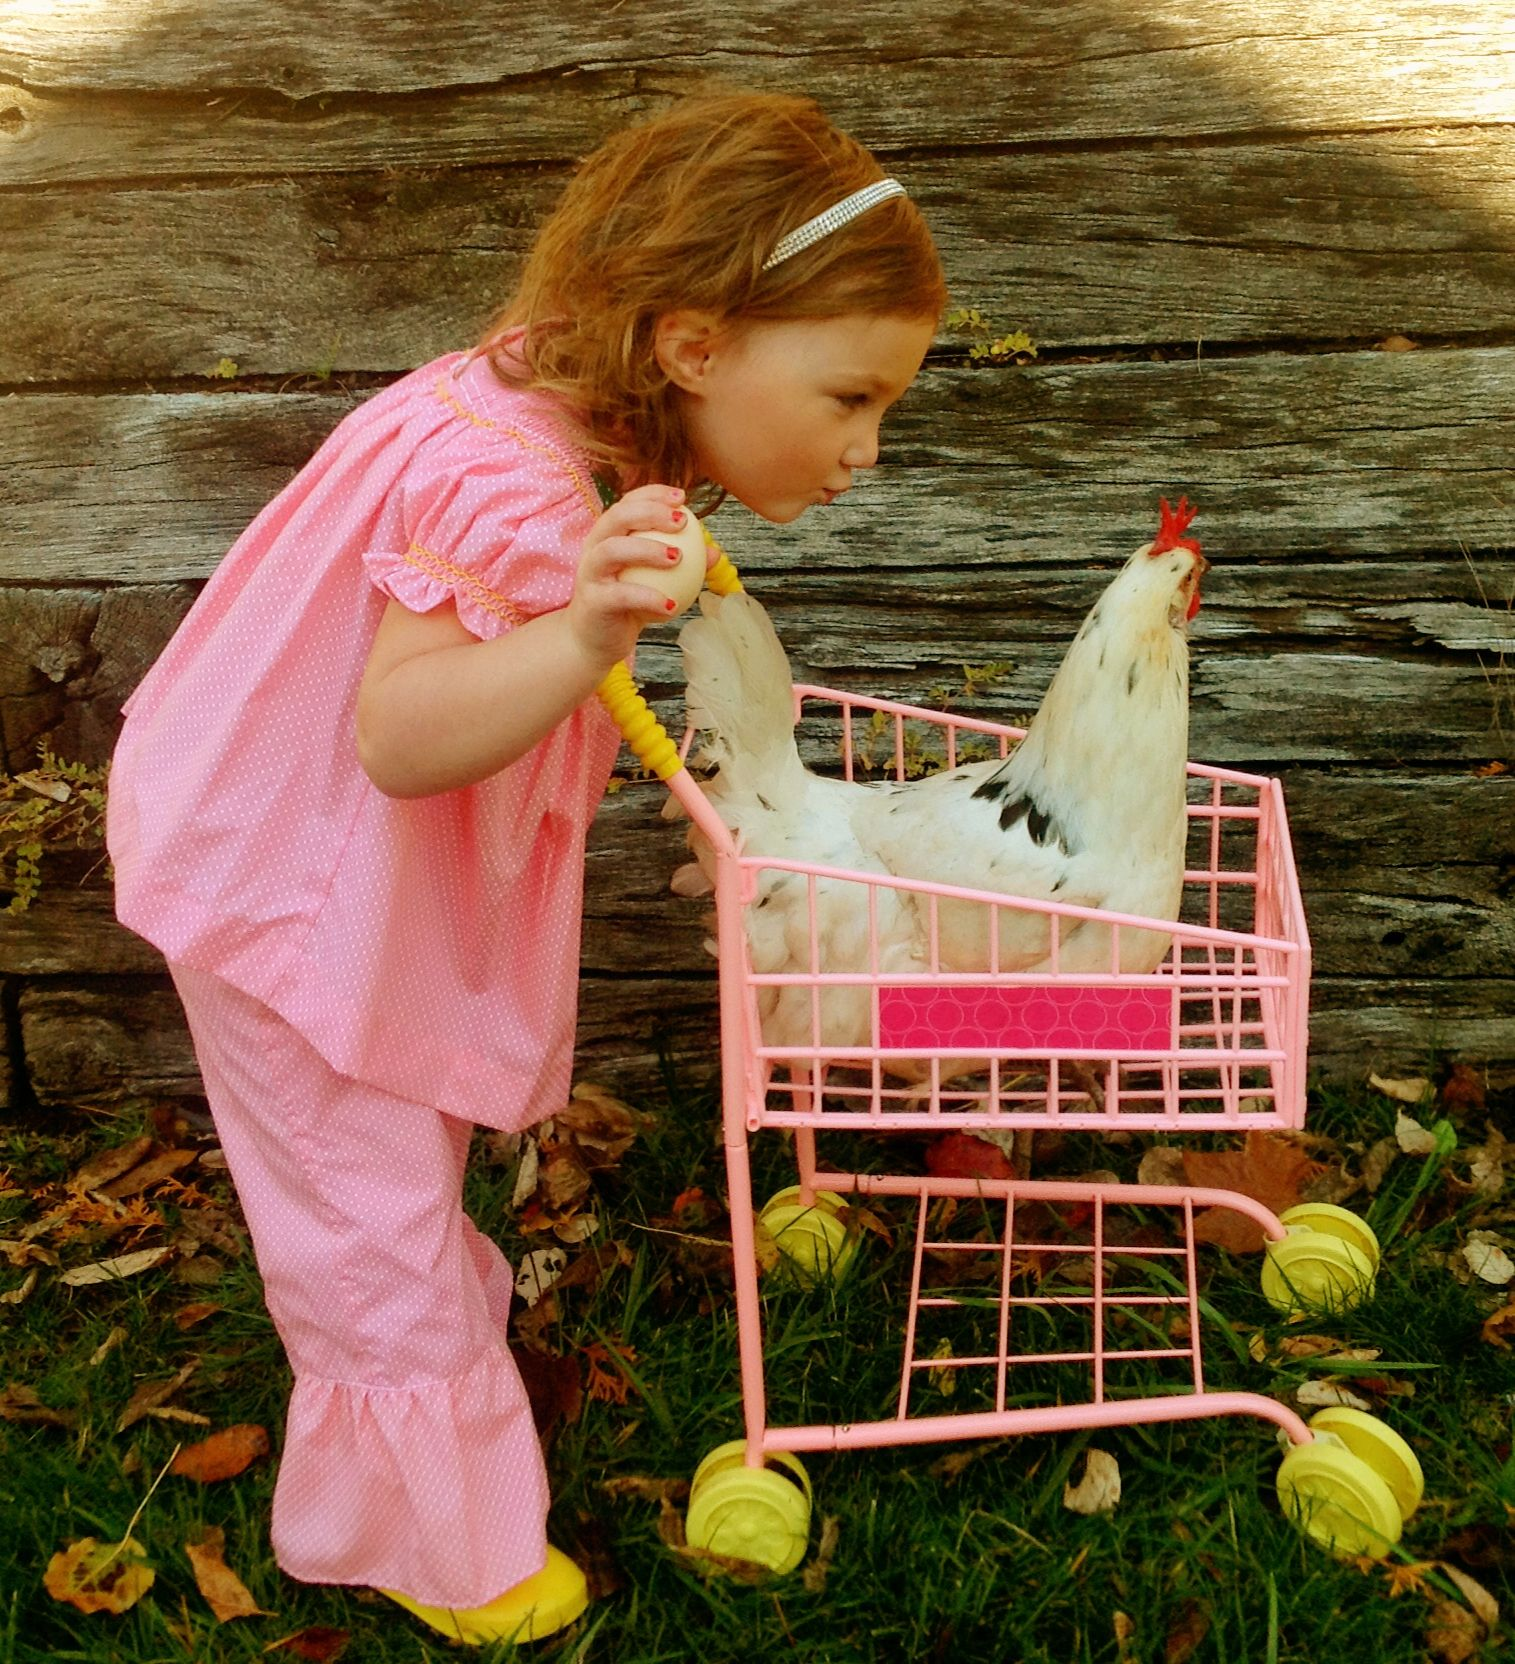 taking your chicken for a ride in your tiny pink shopping cart